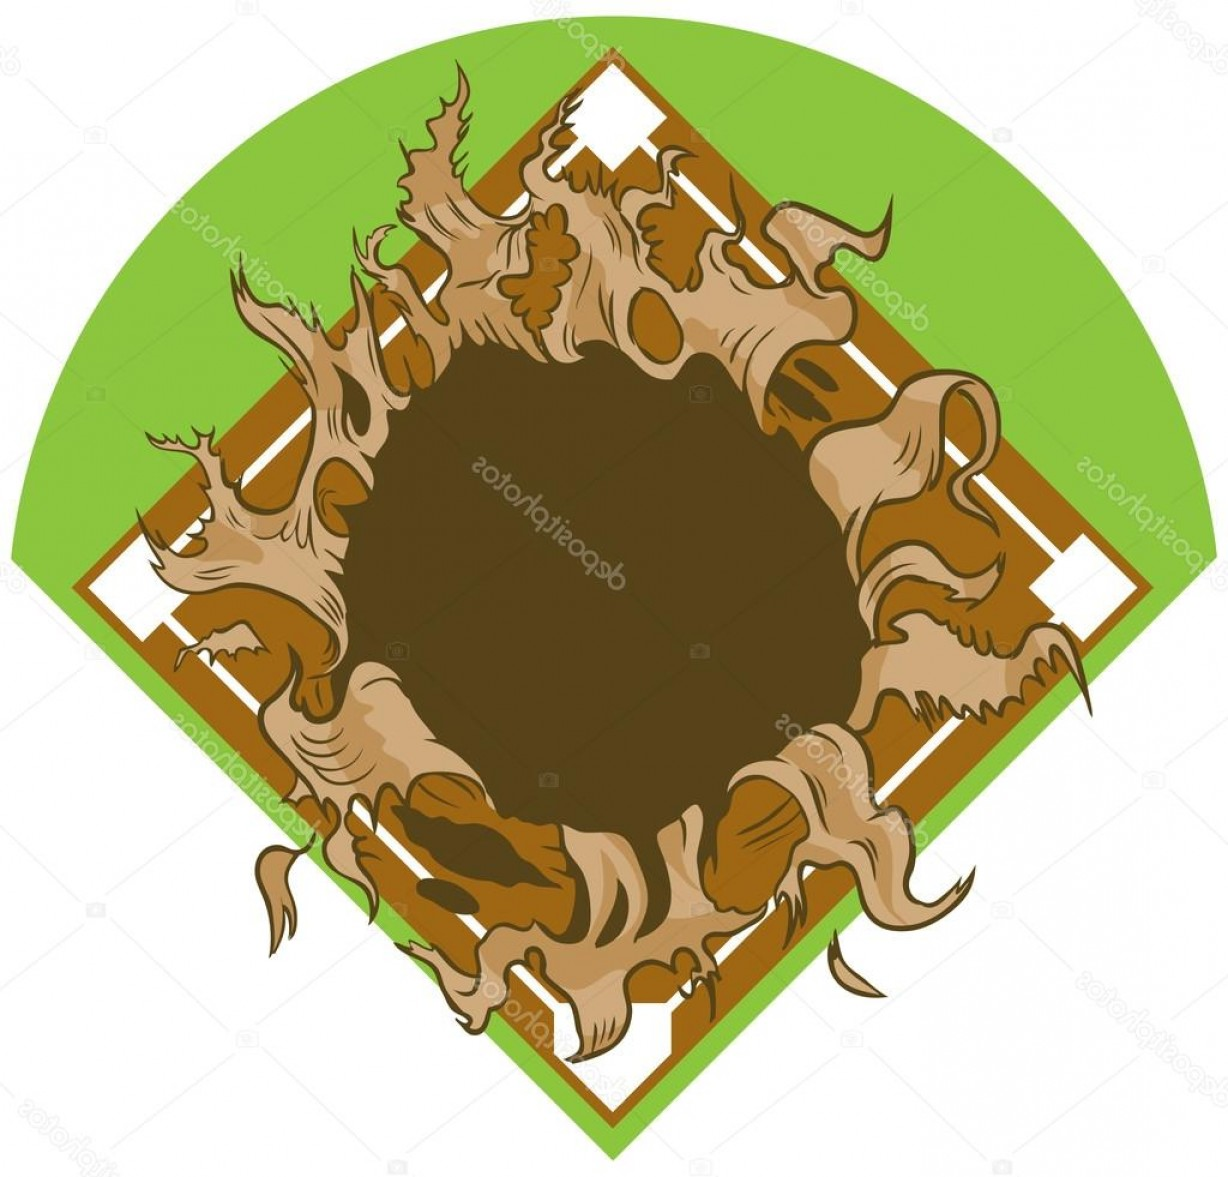 Baseball Tails Vector Clip Arts: Stock Illustration Hole Ripping Out Of Baseball